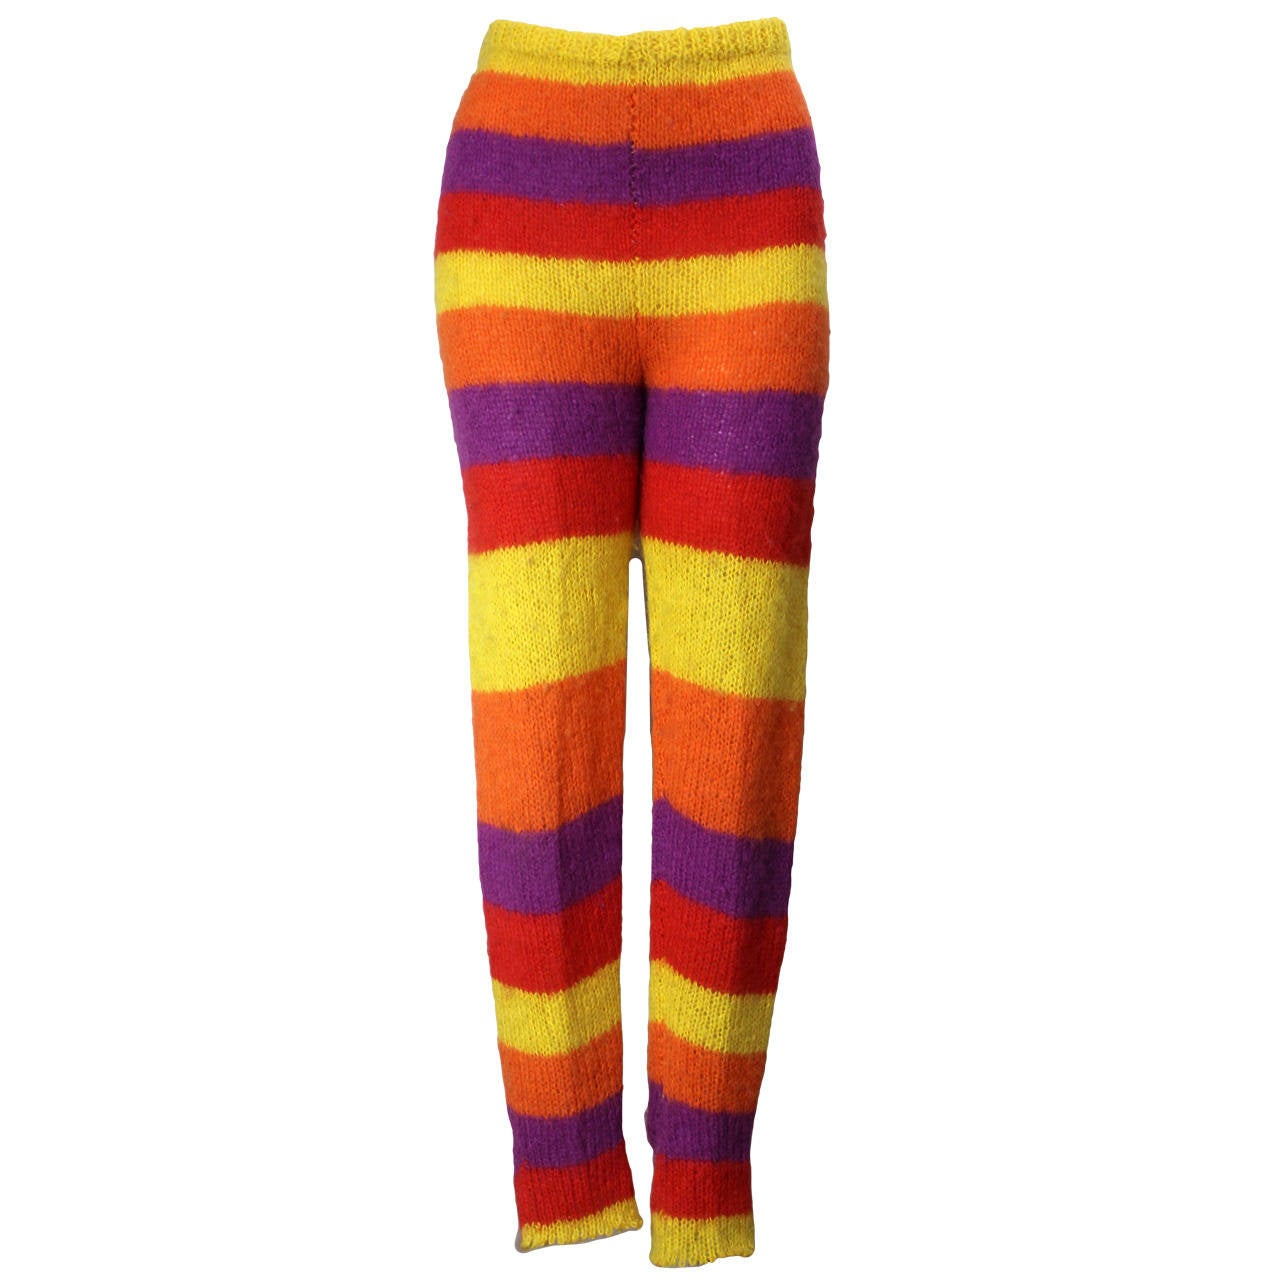 1980s Stephen Sprouse Striped Hand Knitted Leggings